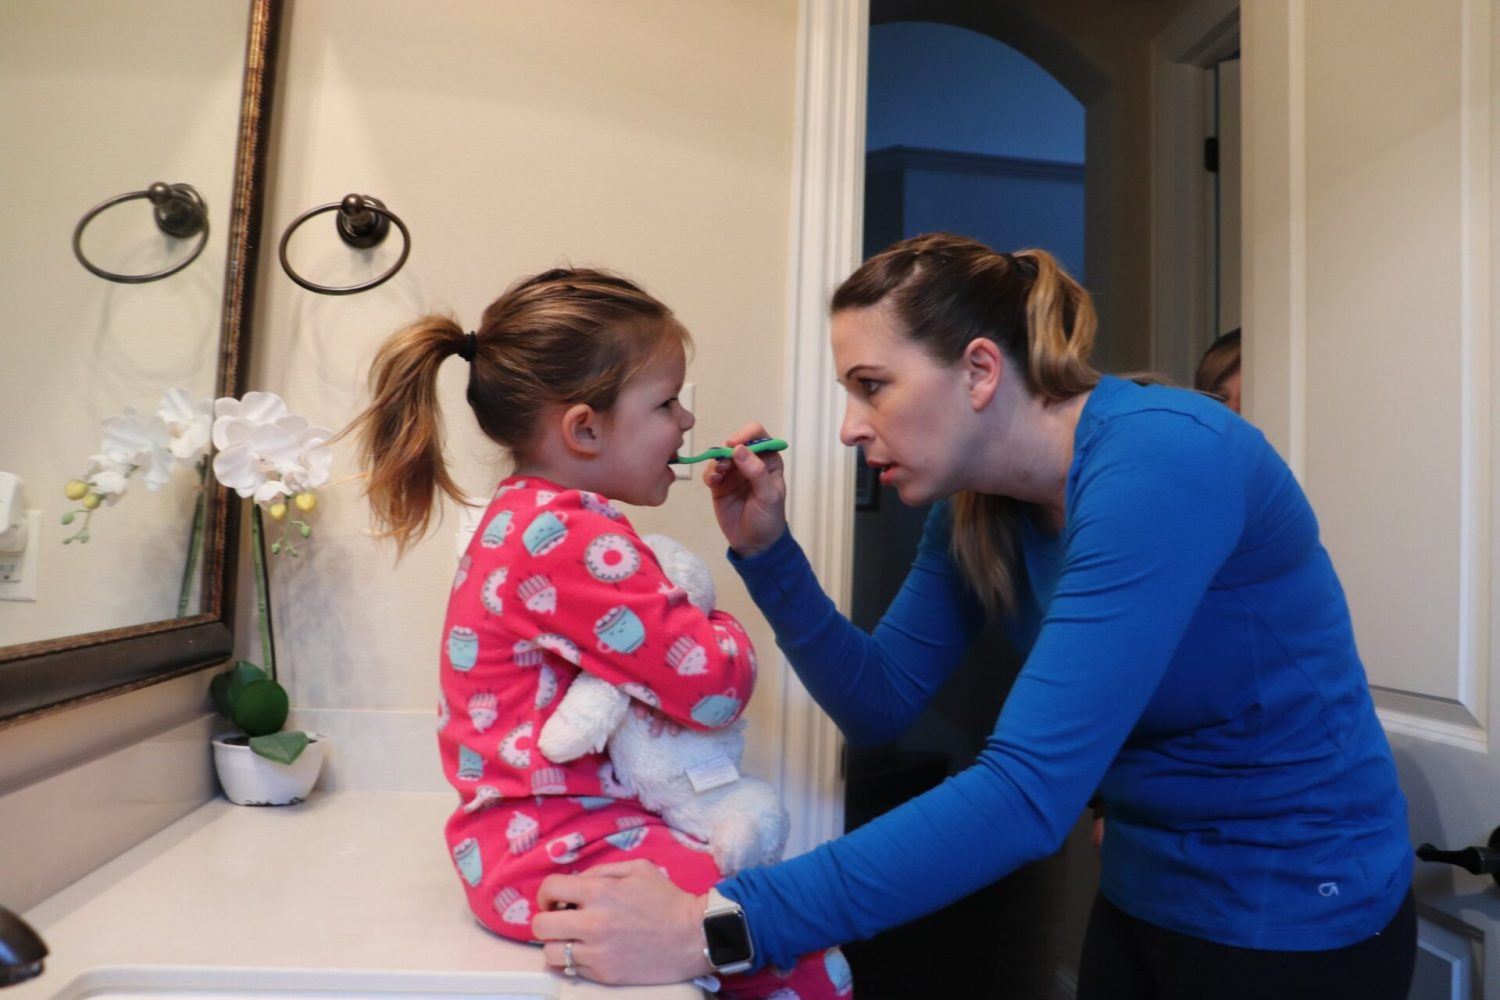 Do you have a toddler brushing teeth struggle every single day like I do with mine? We have the simple tips you need to help make toddler tooth brushing fun!